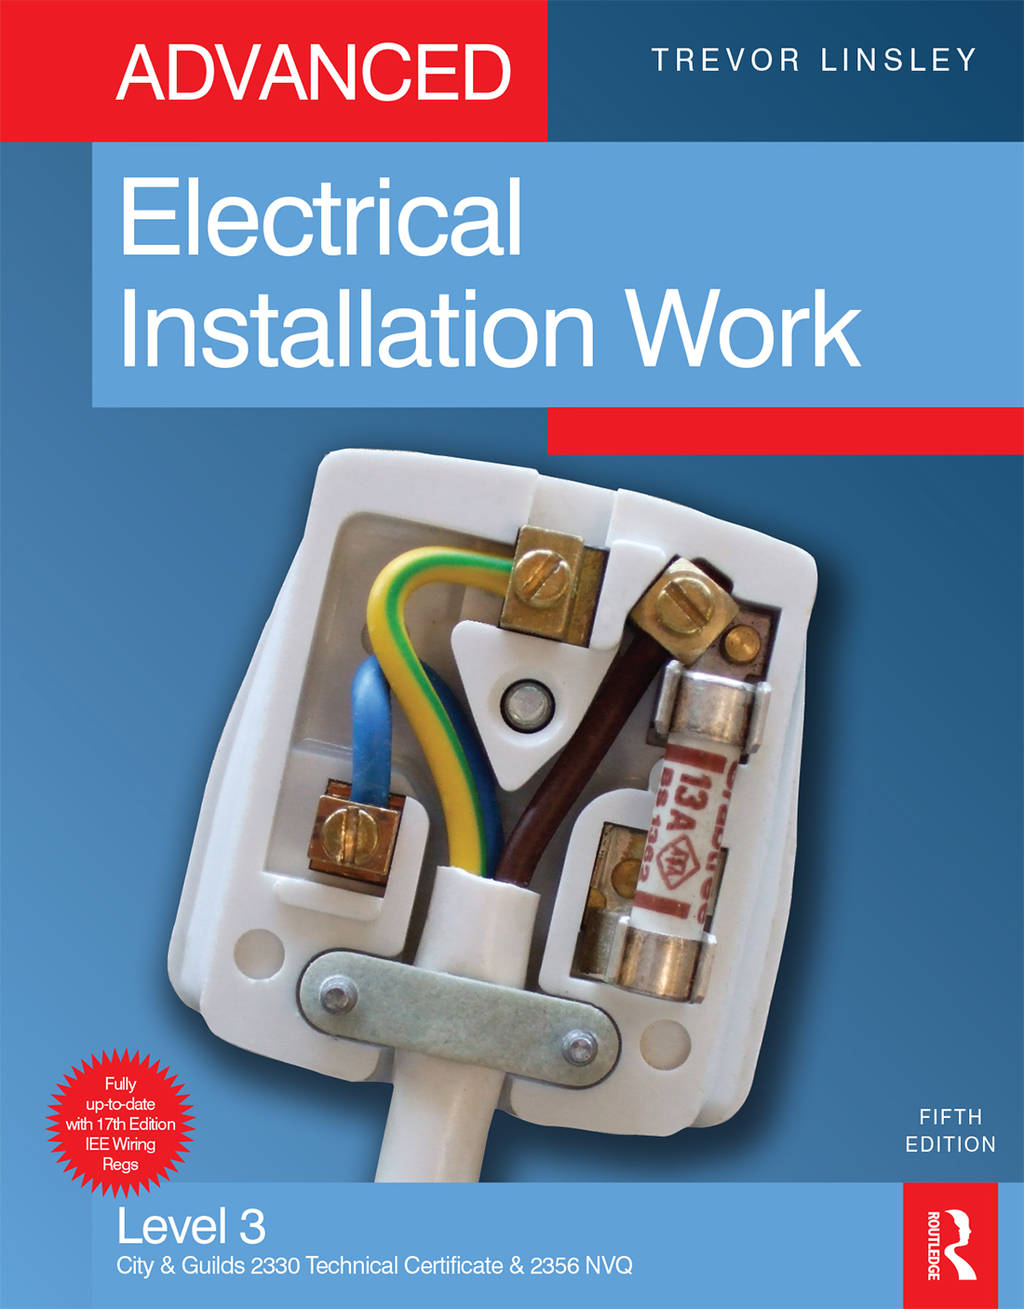 Advanced Electrical Installation Work